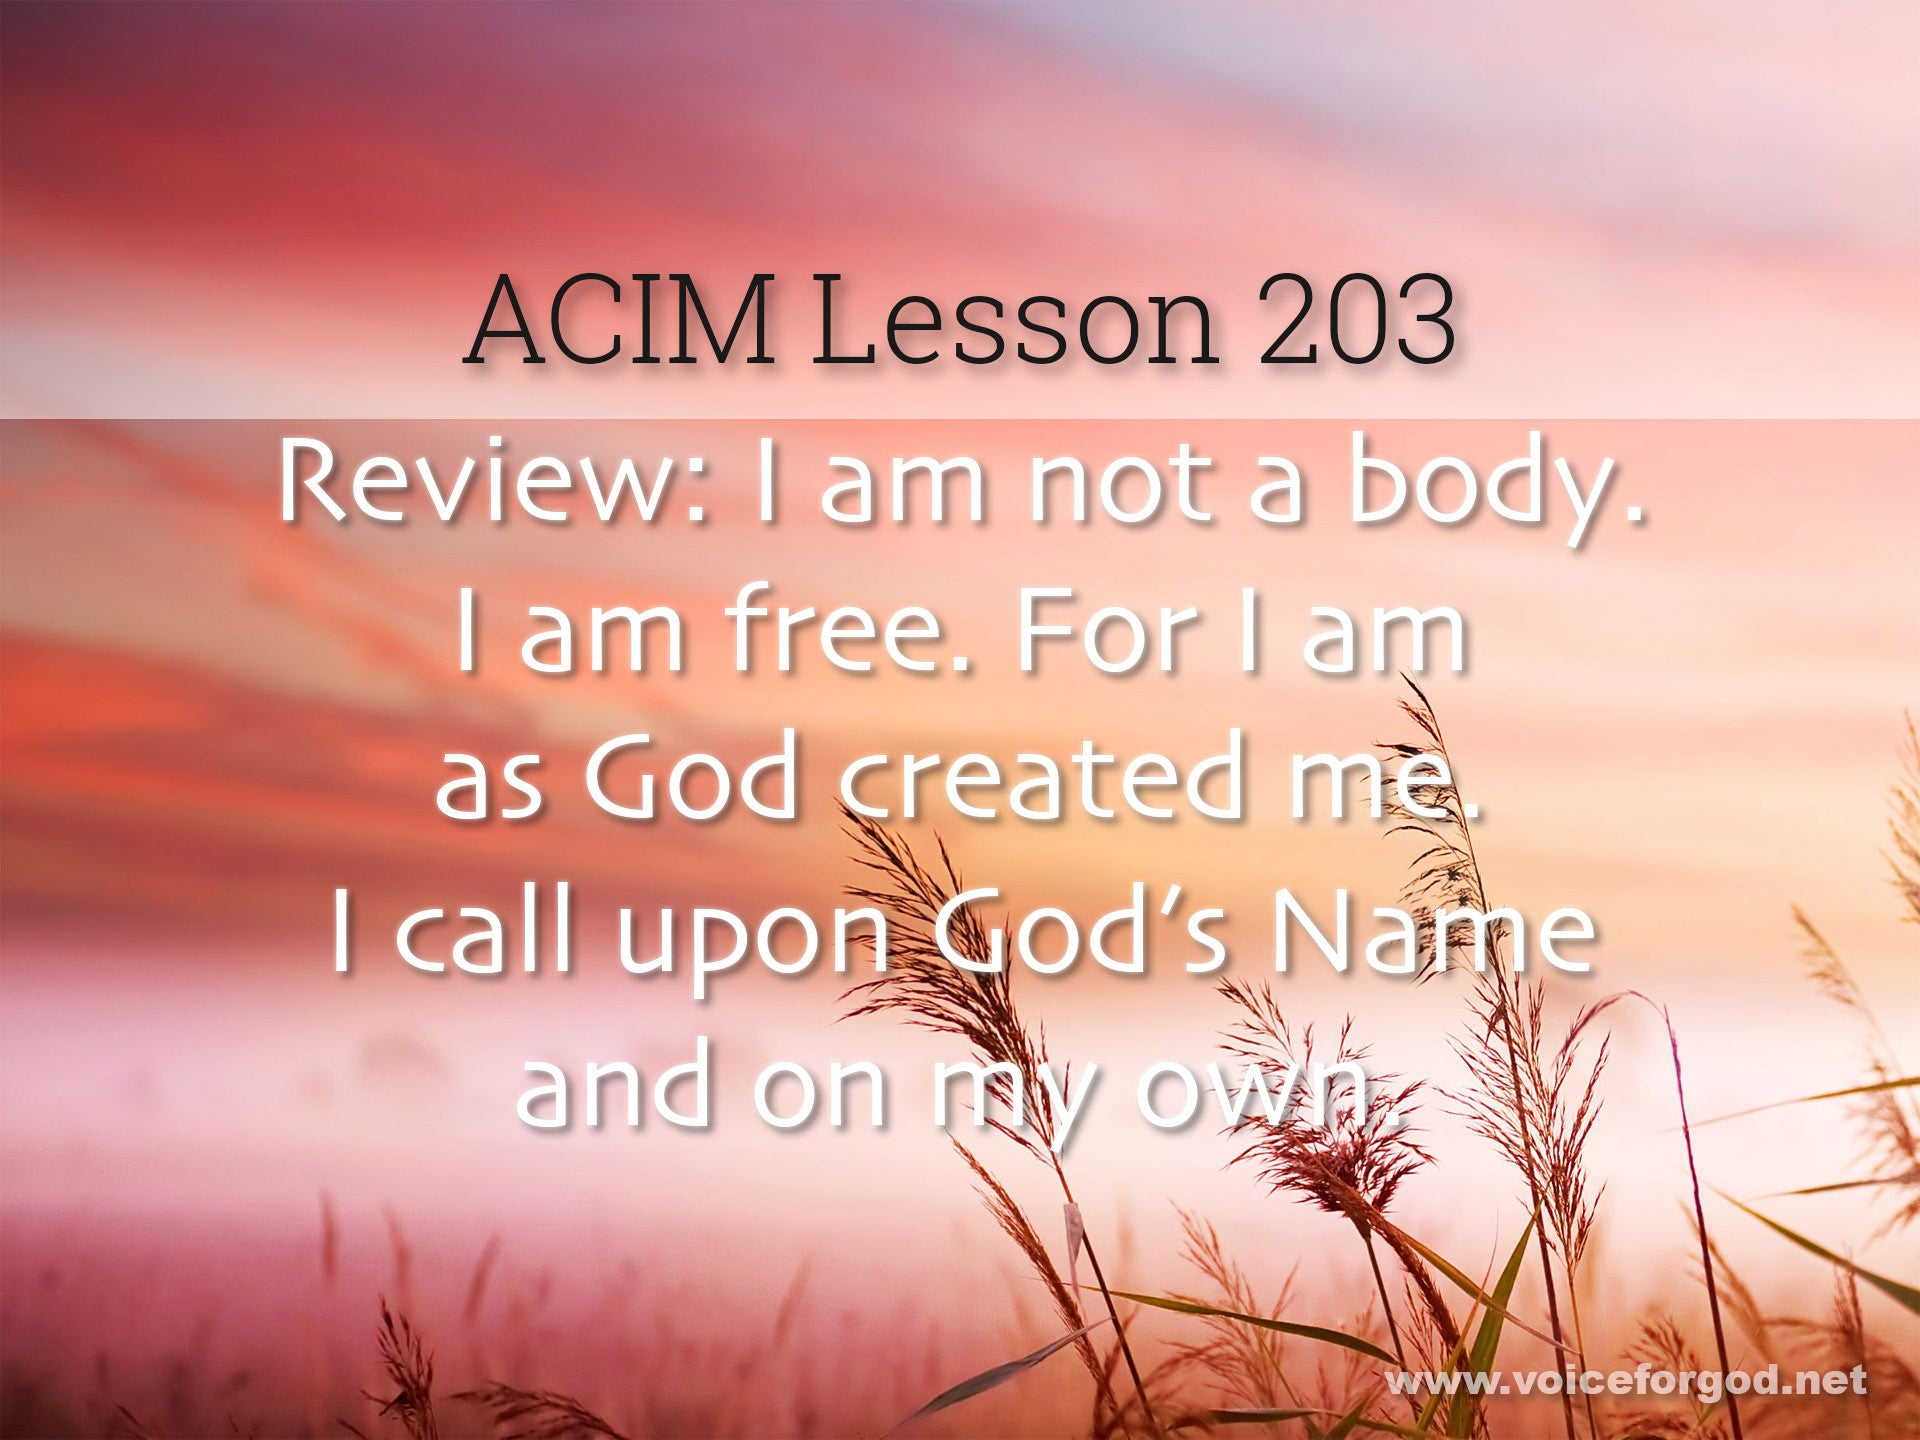 ACIM Lesson 203 - A Course in Miracles Workbook Lesson 203